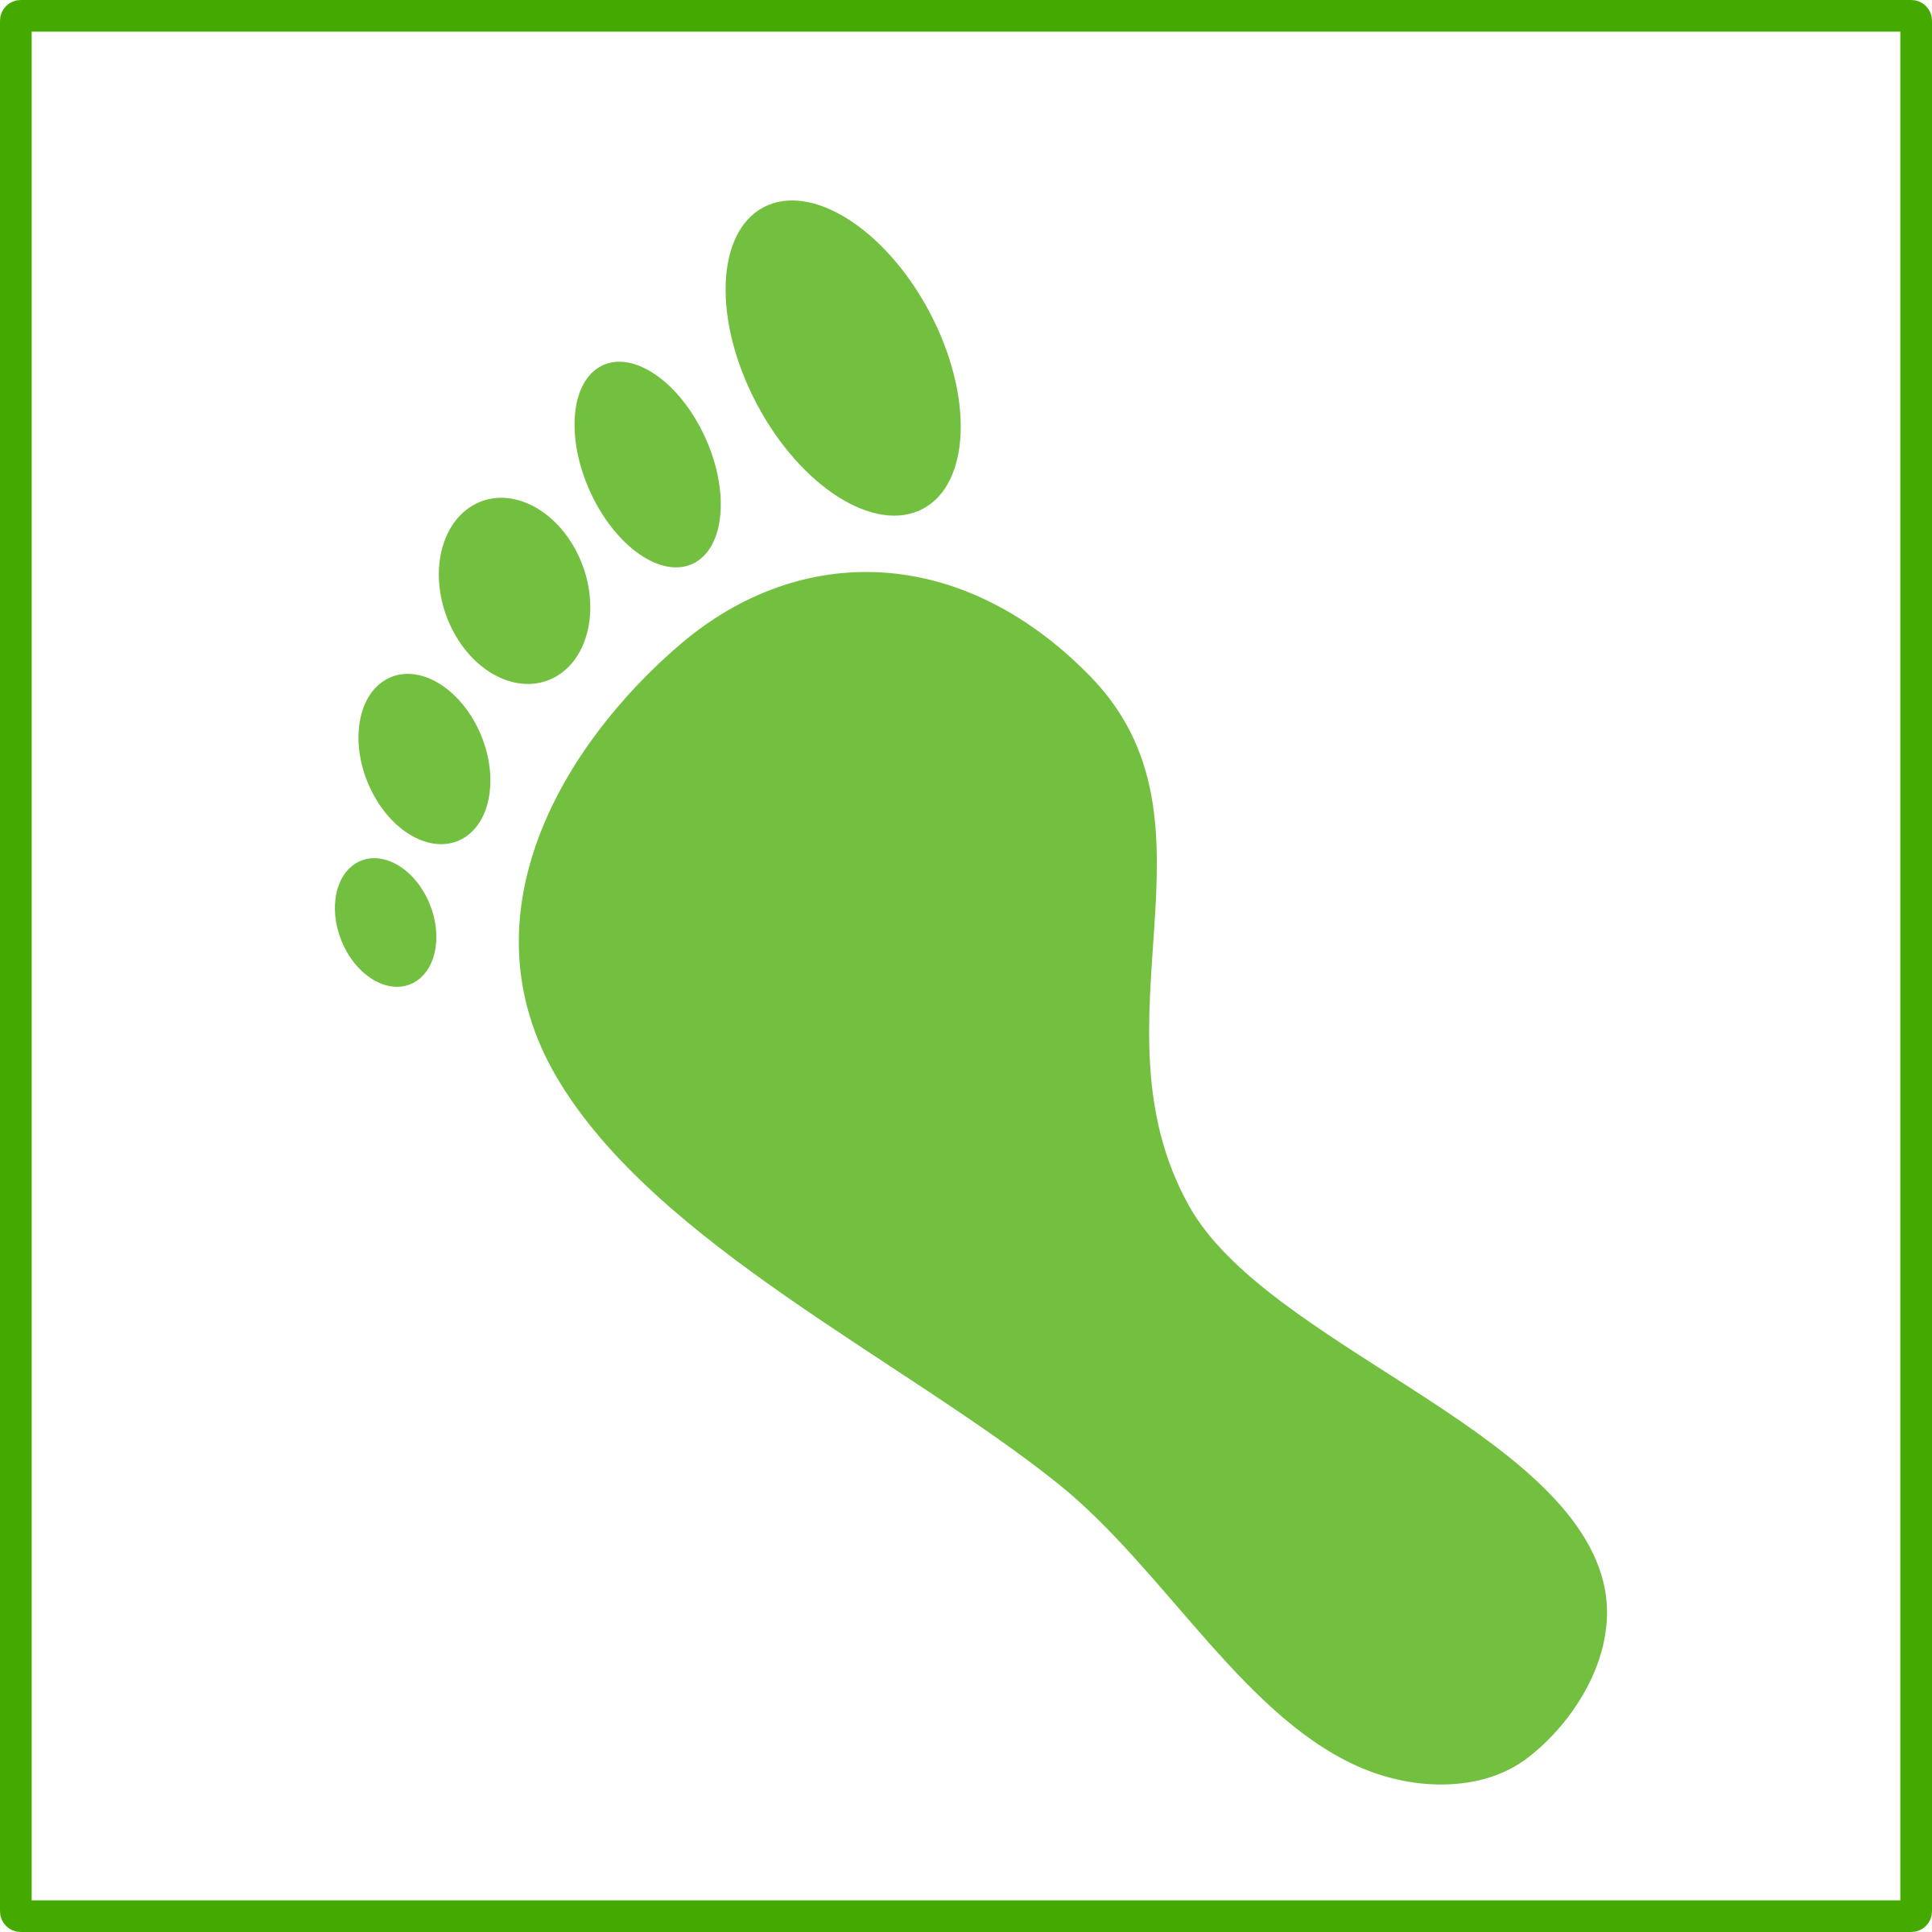 footprint transparent green